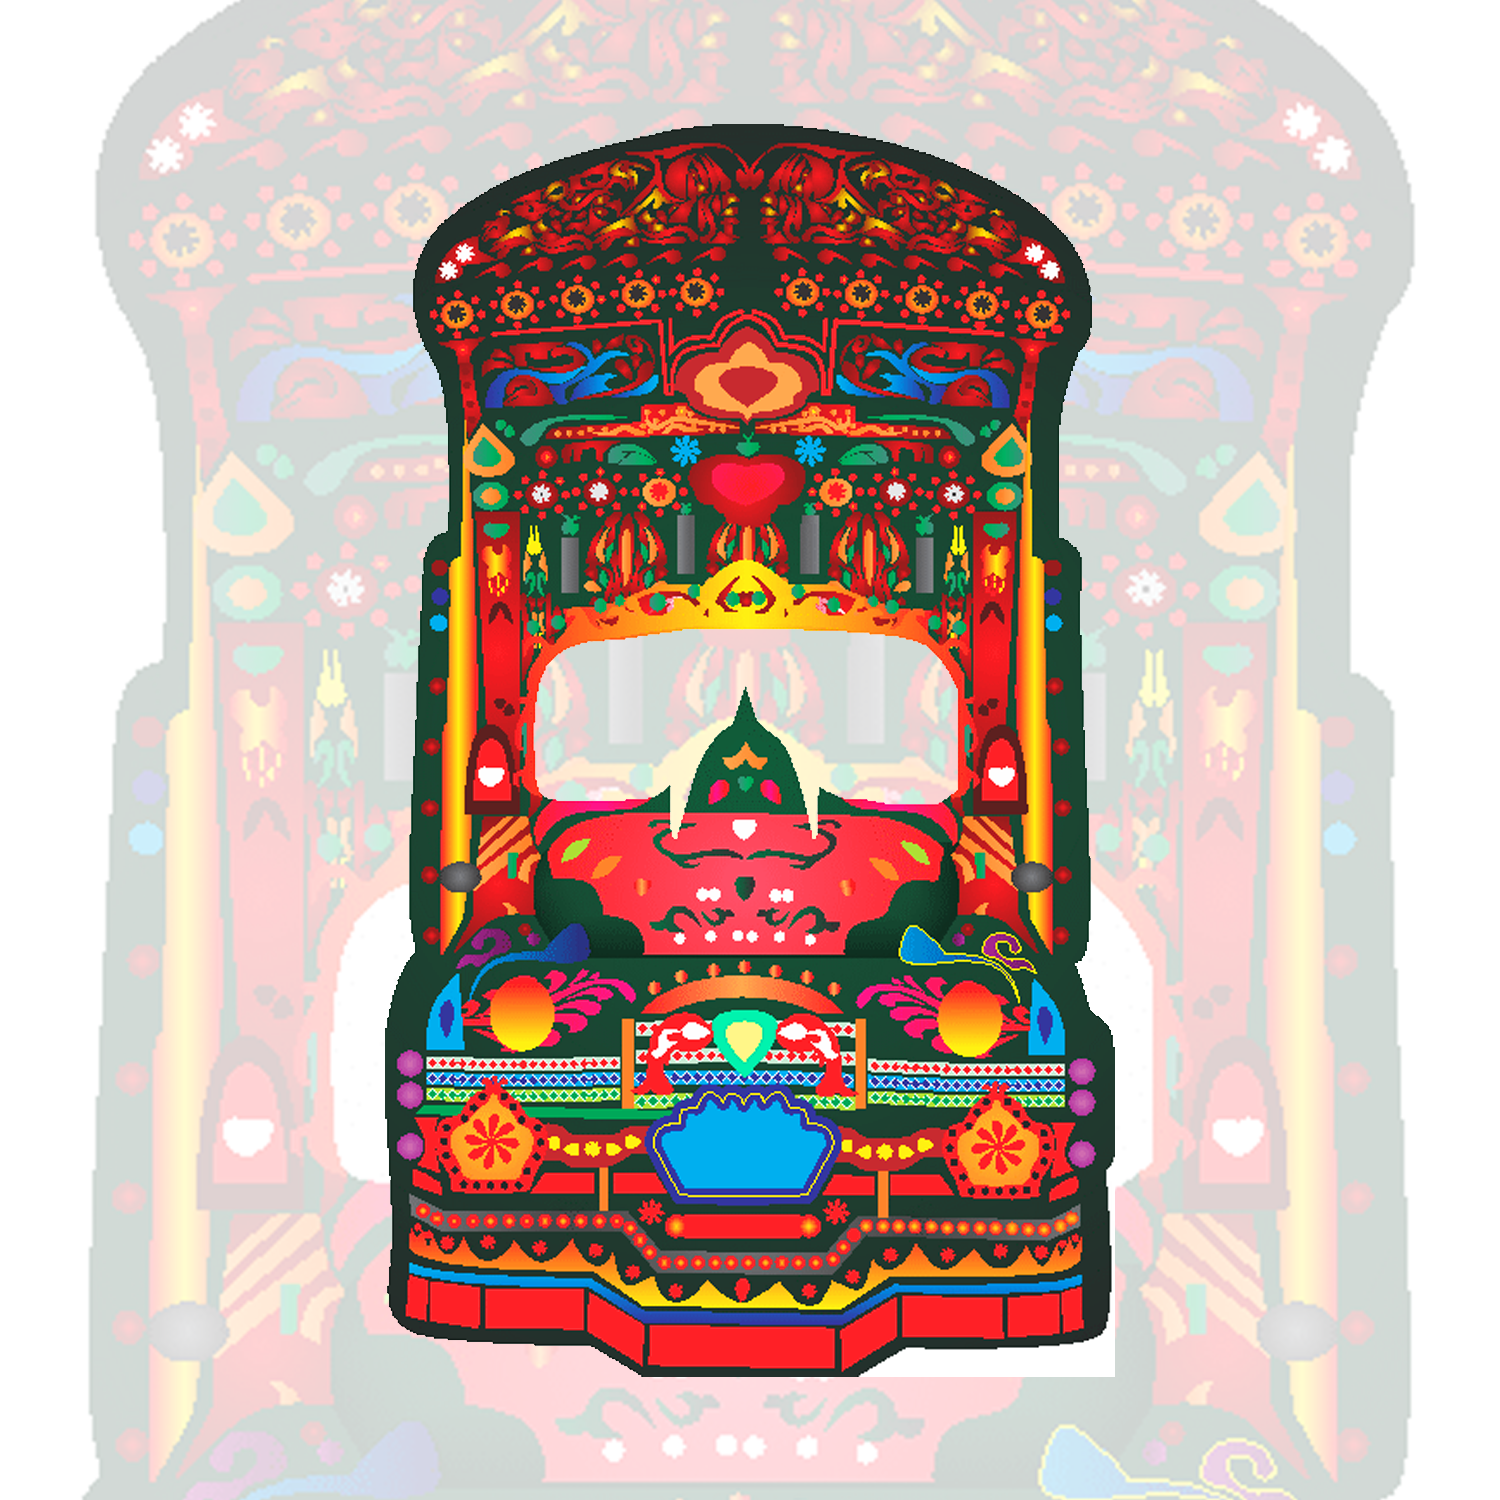 Truck Art Native Decorative Illustration Afridext Quality Designs Haven Logo Design Business Cards Gift Items Business Items T Shirts Arts And Crafts Best Designers